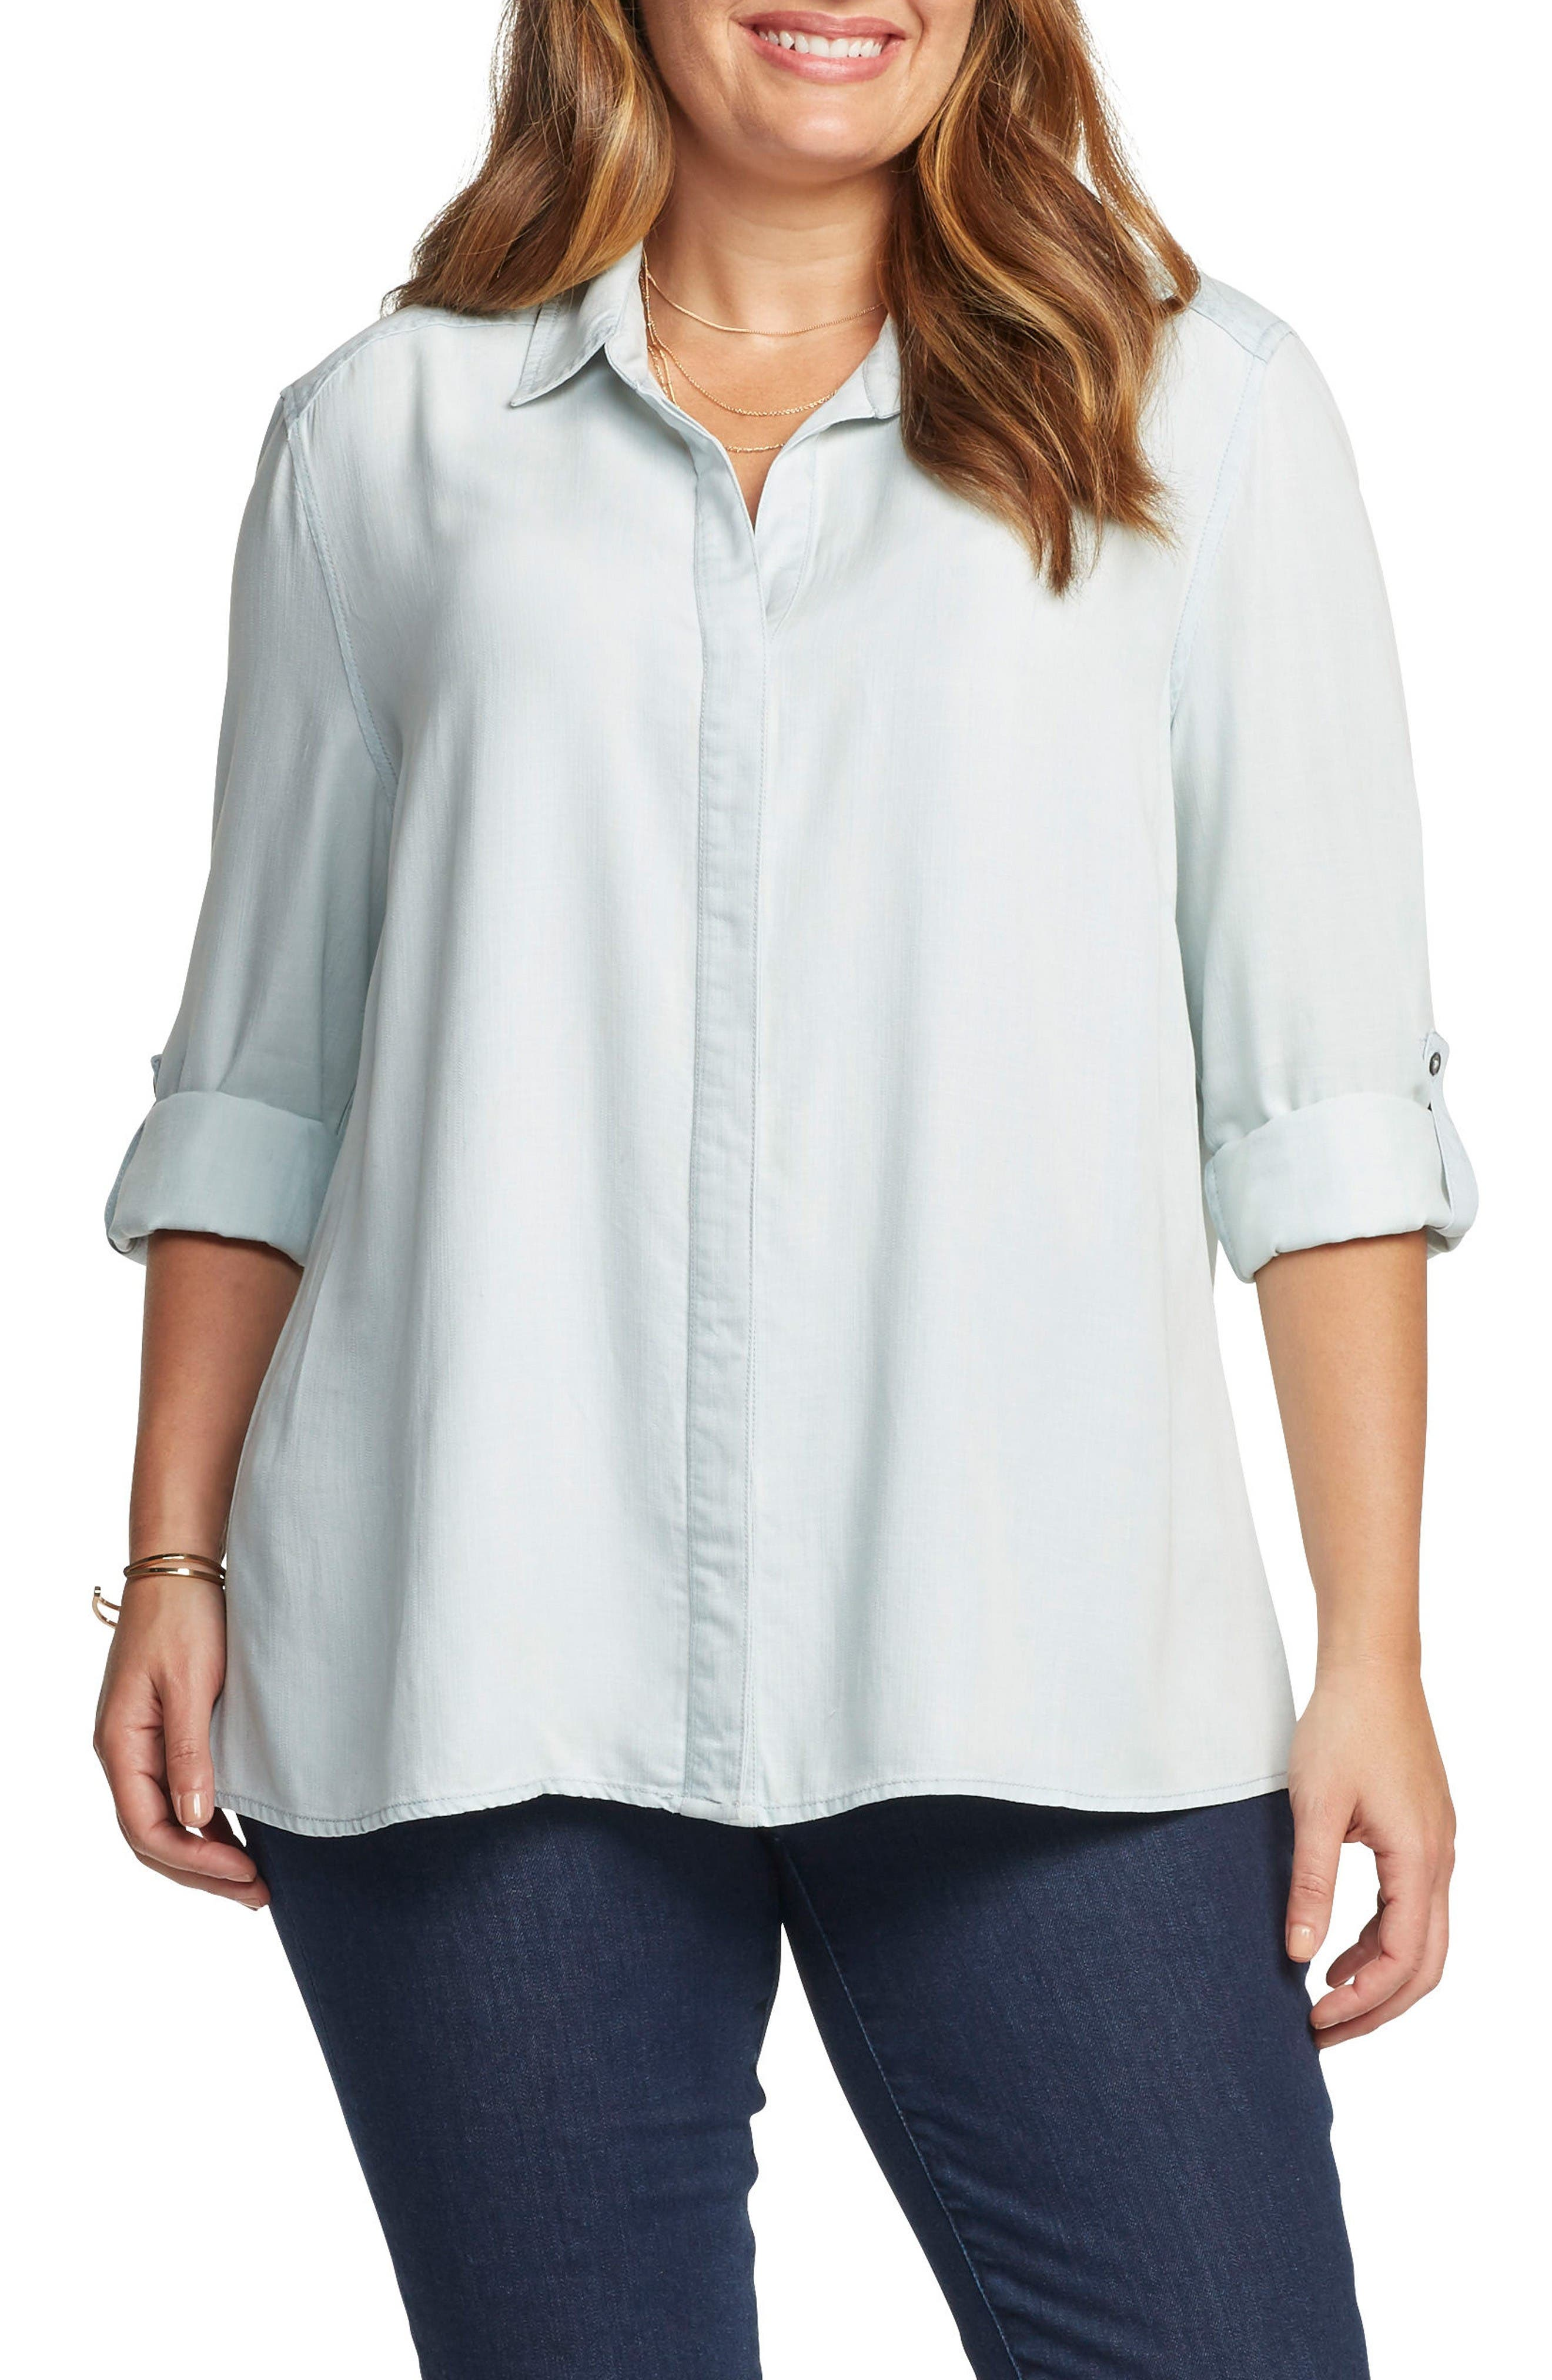 Main Image - Tart Caroline Roll Sleeve Top (Plus Size)